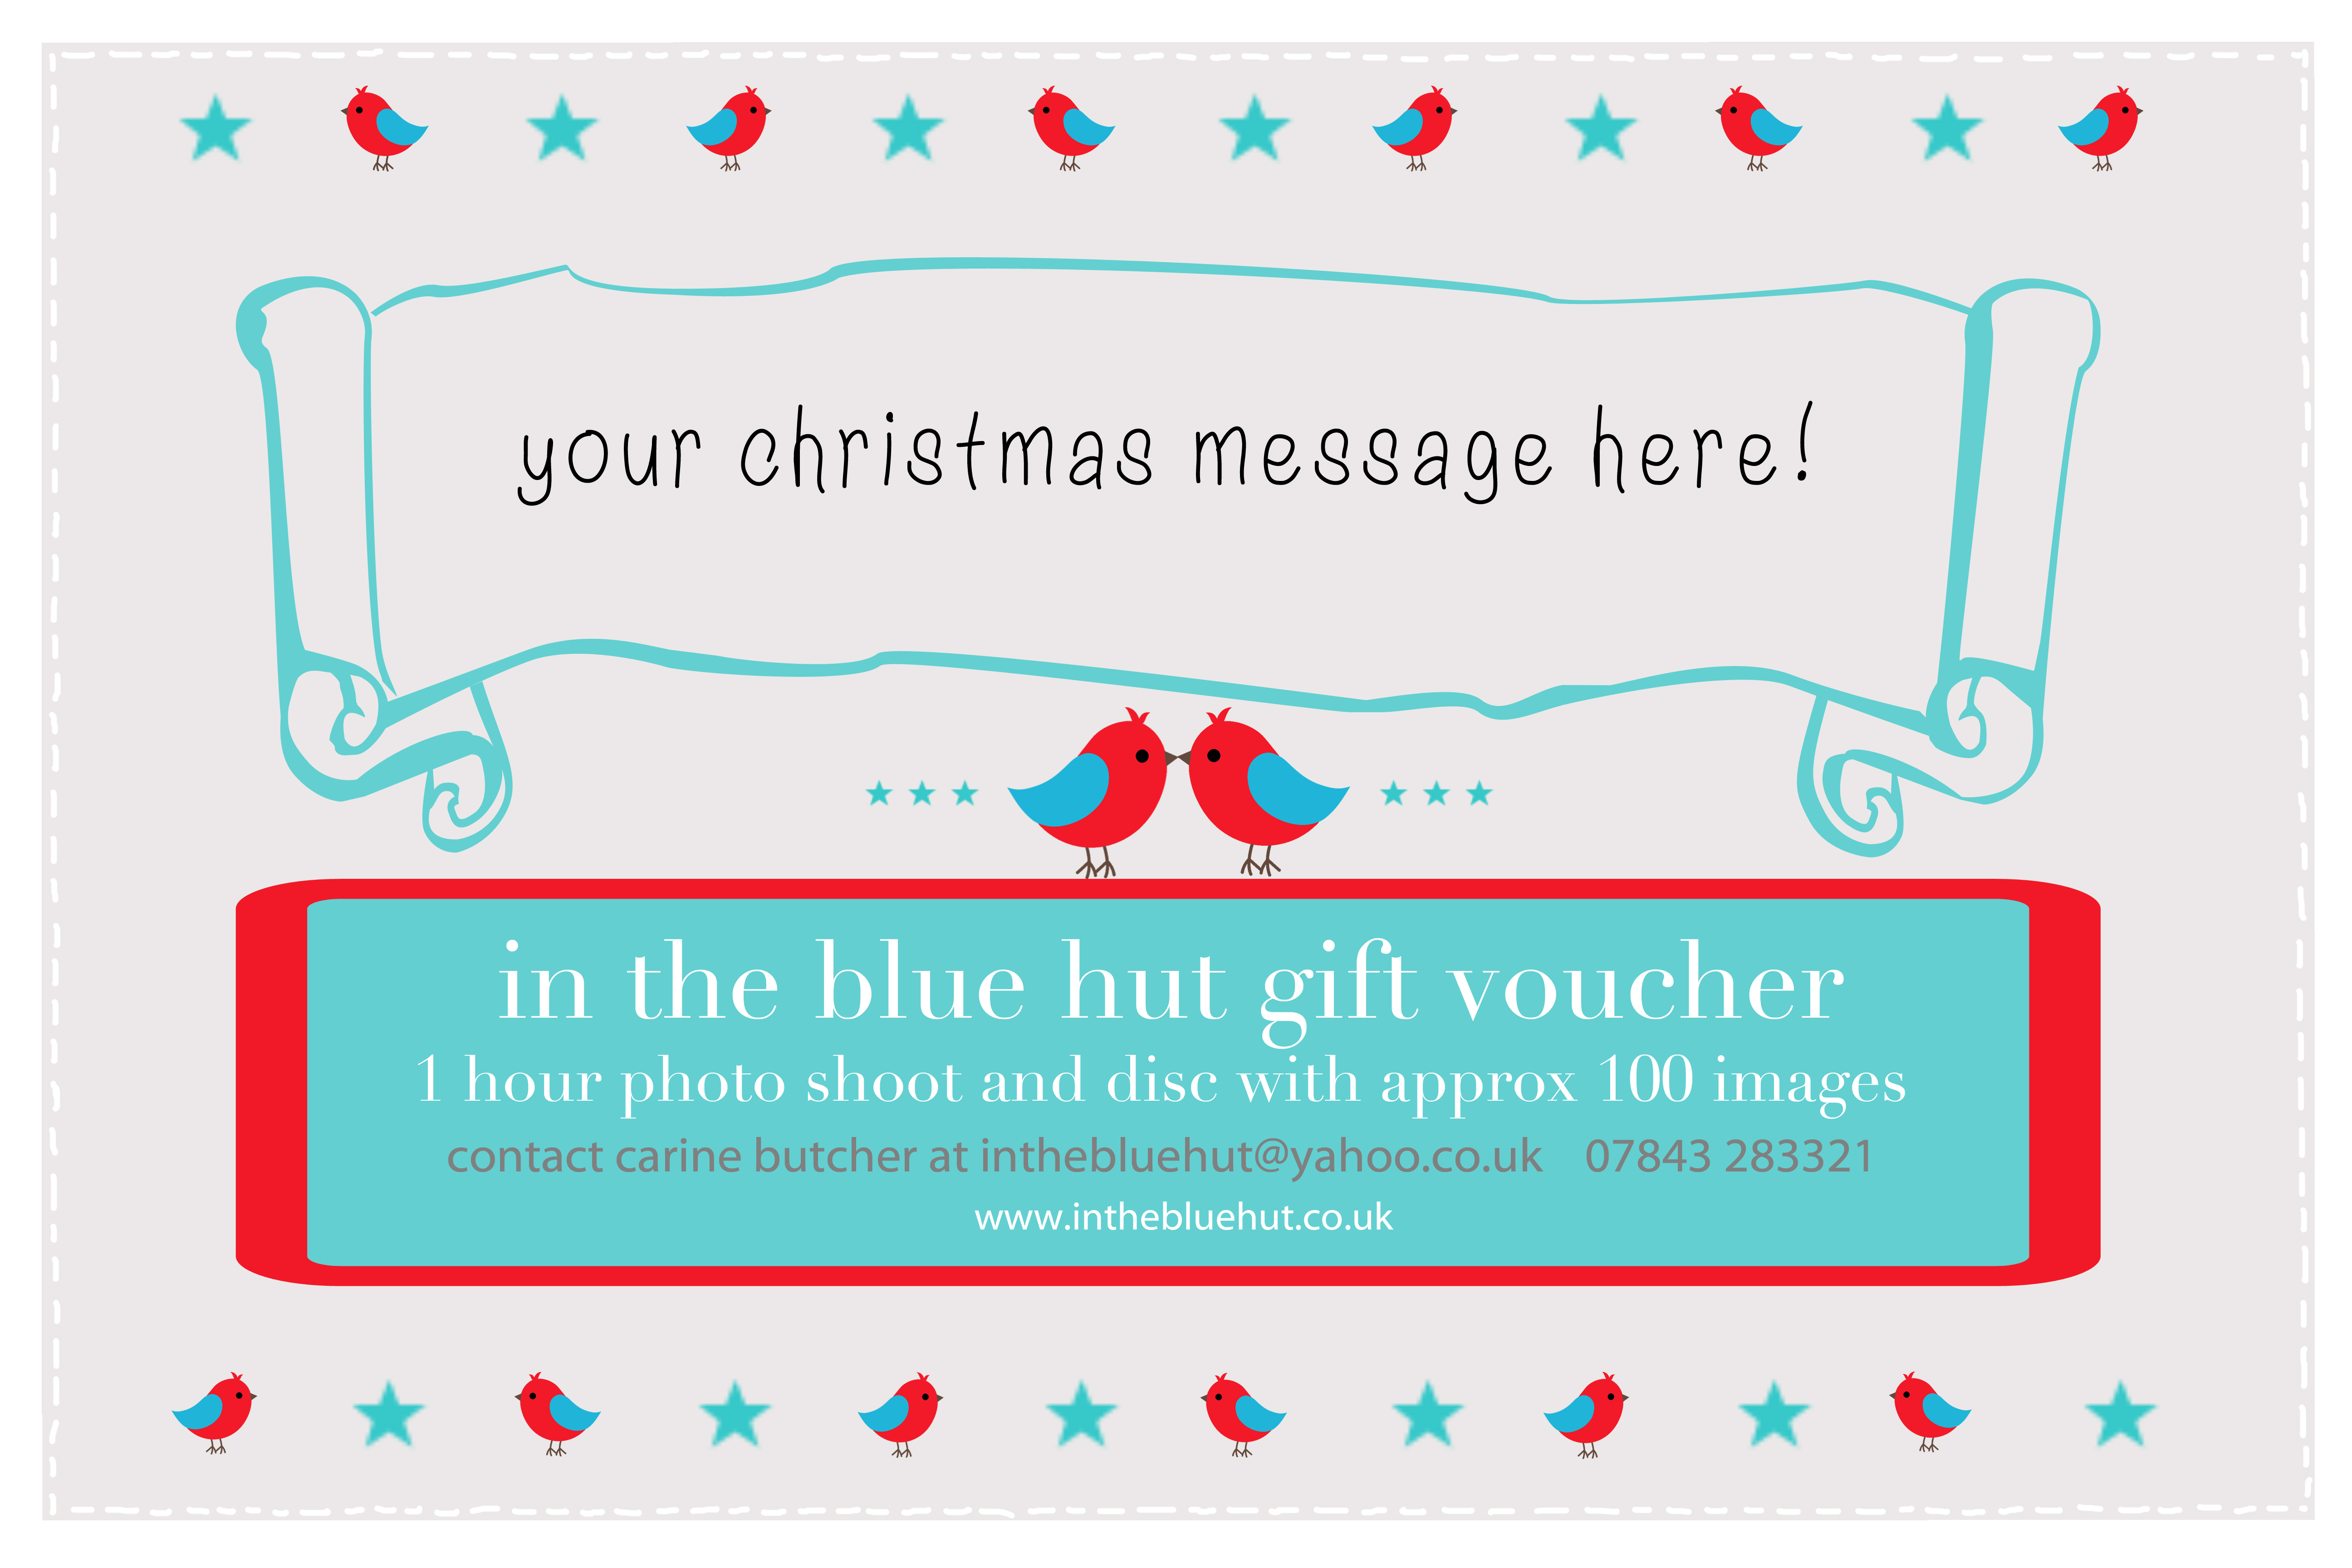 Make your own gift voucher template template for certificates make your own gift voucher template event planning proposal christmas2013 gift voucher template make your own yelopaper Choice Image